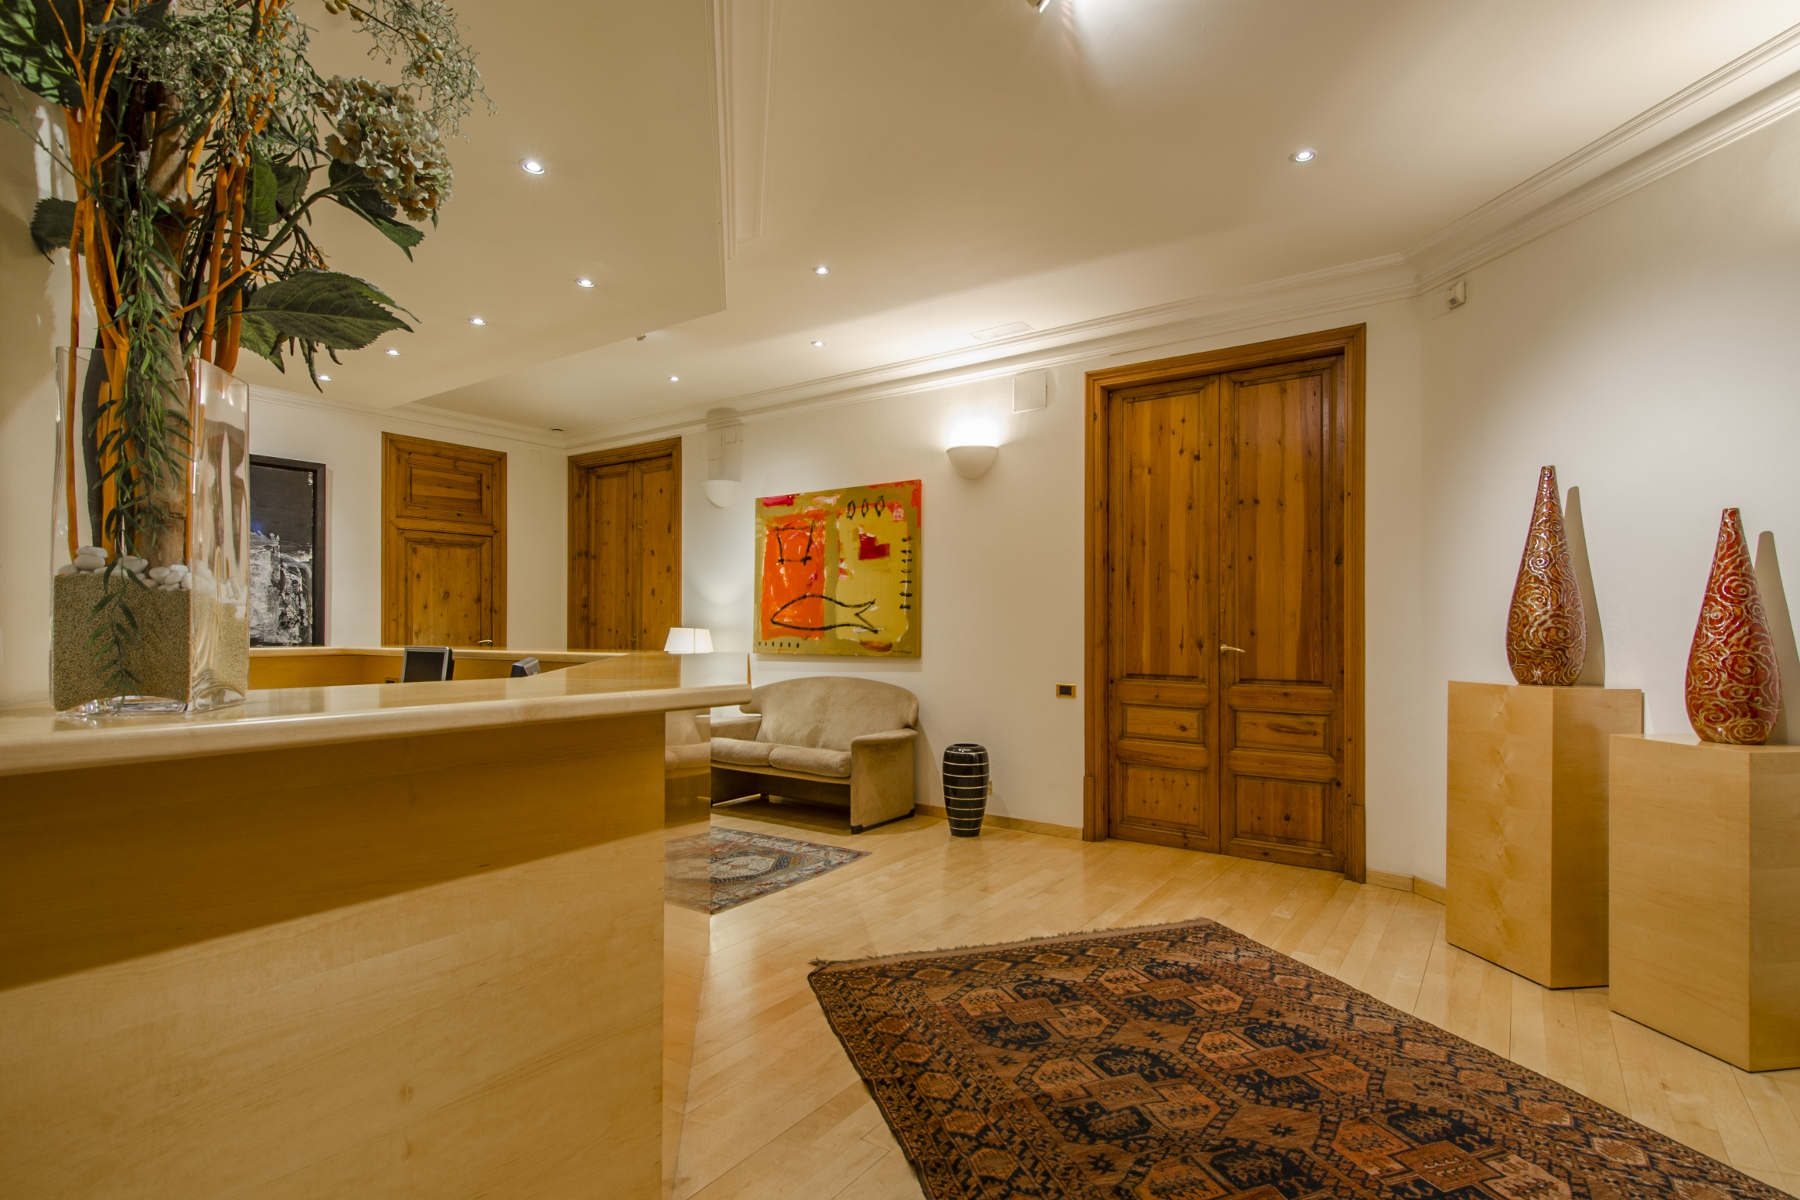 Apartment for Sale at Elegant Property with a Terrace in Eixample Derecho Eixample, Barcelona City, Barcelona, 08007 Spain